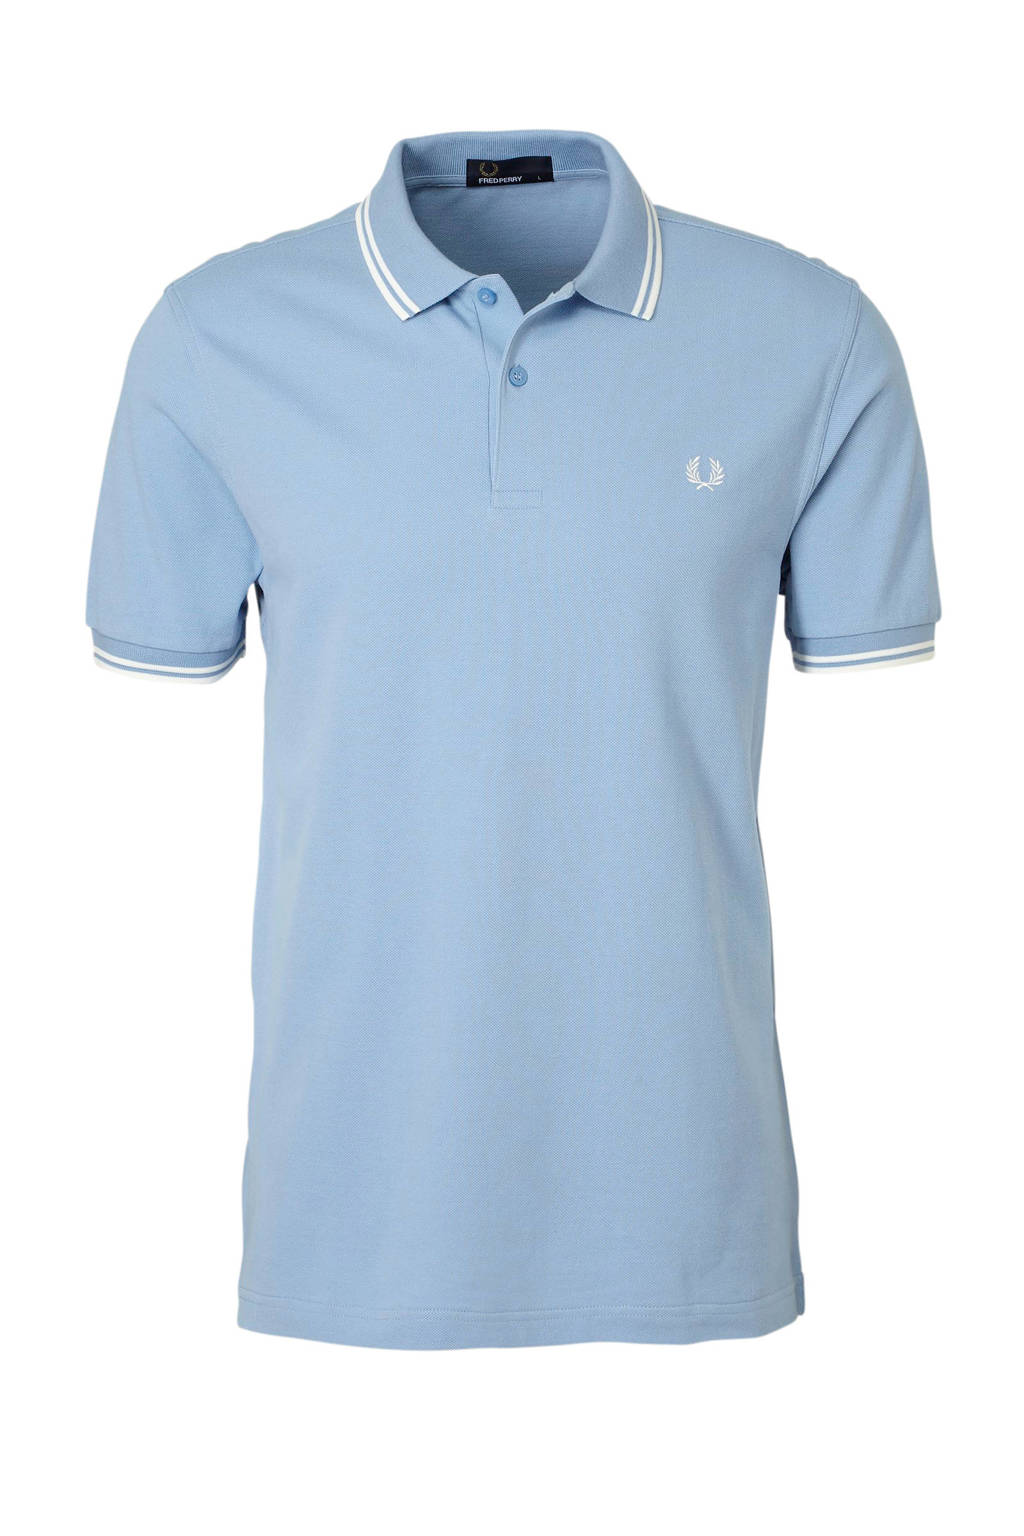 Fred Perry polo, Hemelsblauw